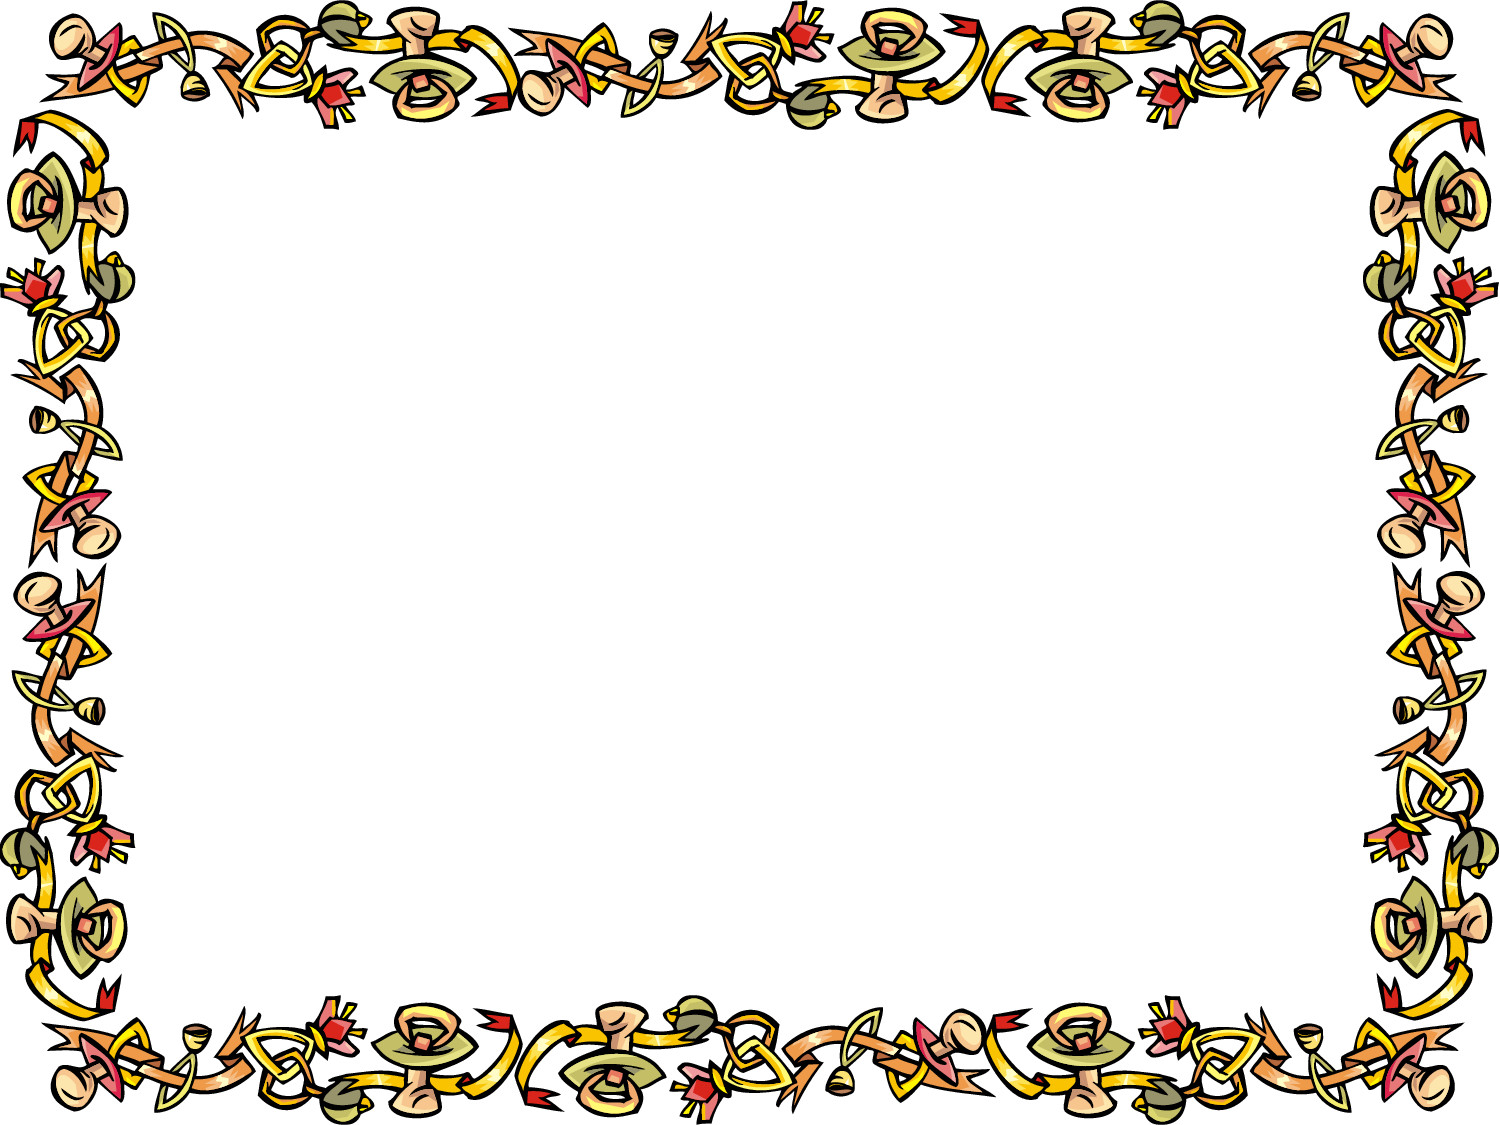 Border Template for Word Free Border for Word Download Free Clip Art Free Clip